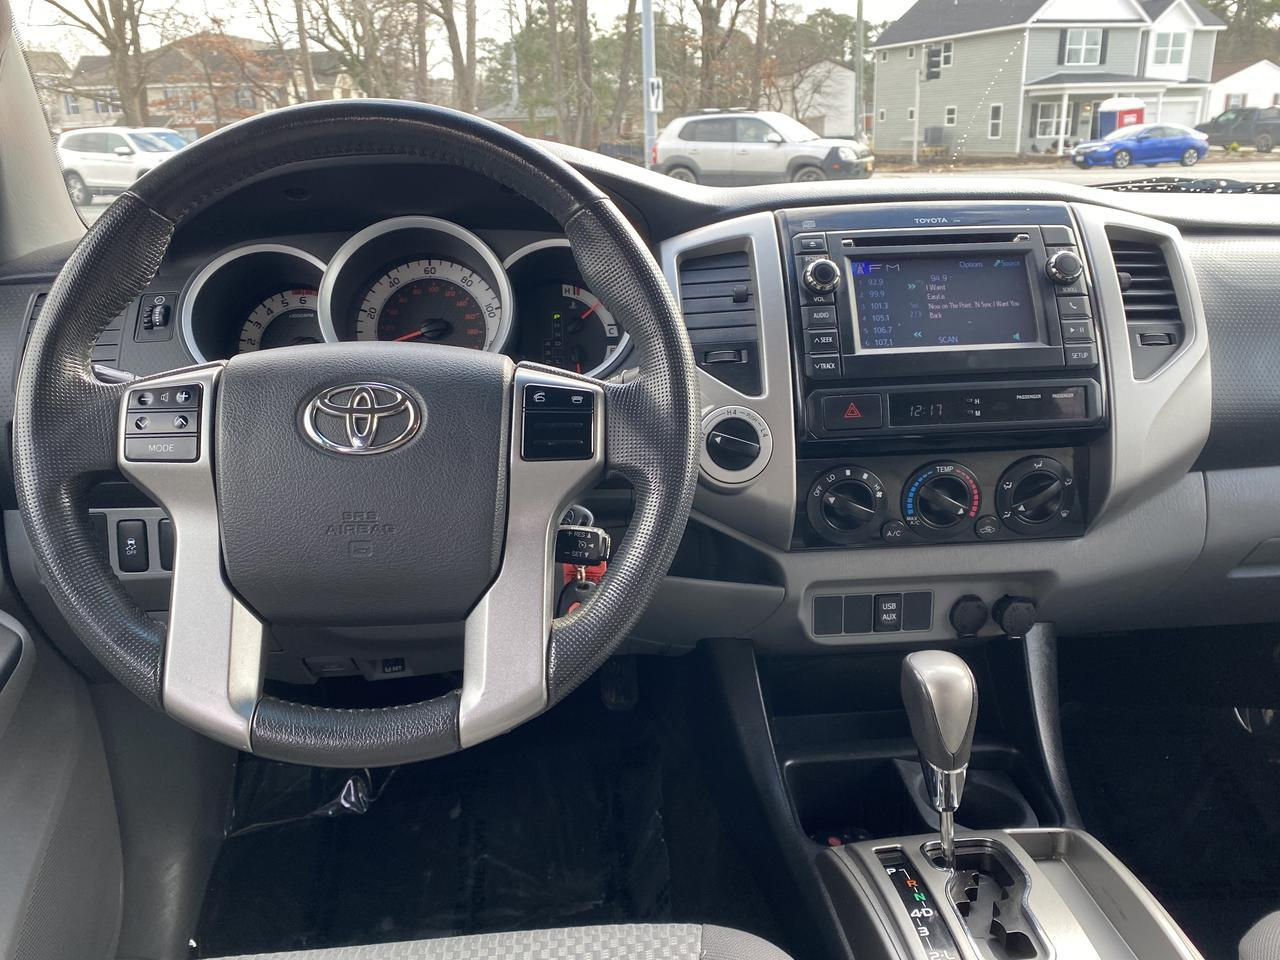 2013 TOYOTA TACOMA SR5 DOUBLE CAB 4X4, WARRANTY, BLUETOOTH, AUX/USB PORT, BACKUP CAM,  TOW PKG! Norfolk VA